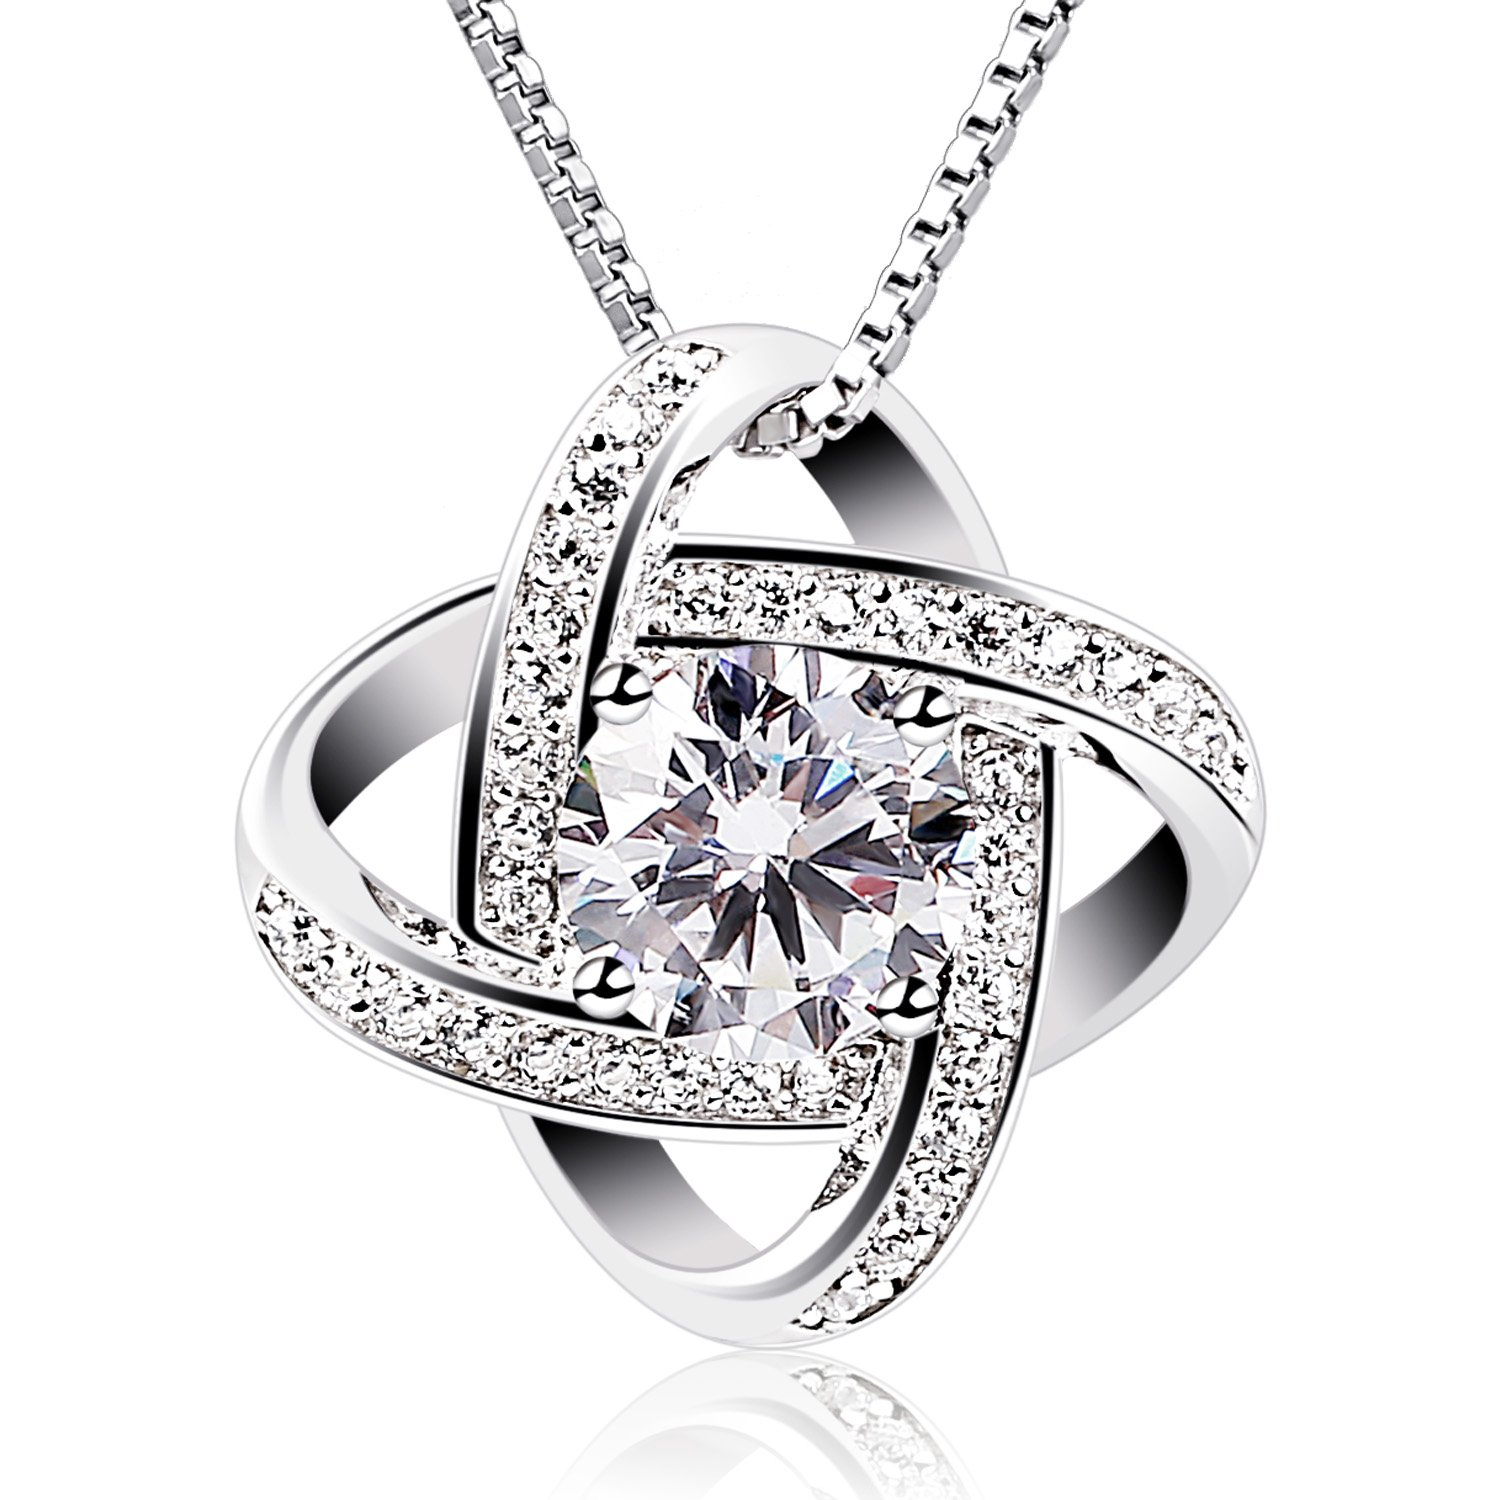 B.Catcher Sterling Silver Necklaces 925 Silver Cubic Zirconia Pendant Gemini Necklace Fine Jewellery Gifts BC-271